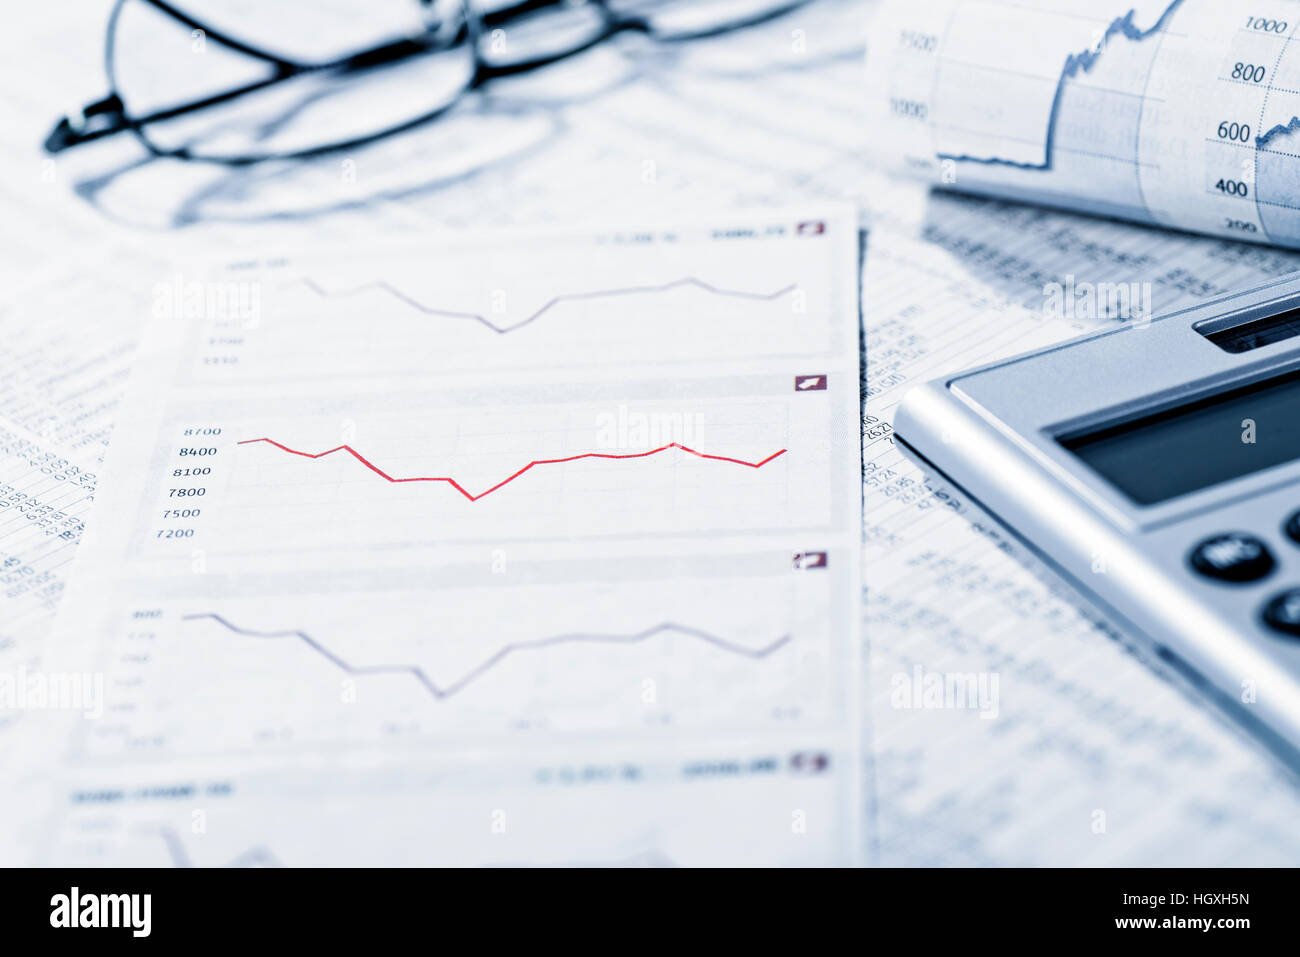 Rate tables and diagrams symbolize the volatility of the financial market. - Stock Image